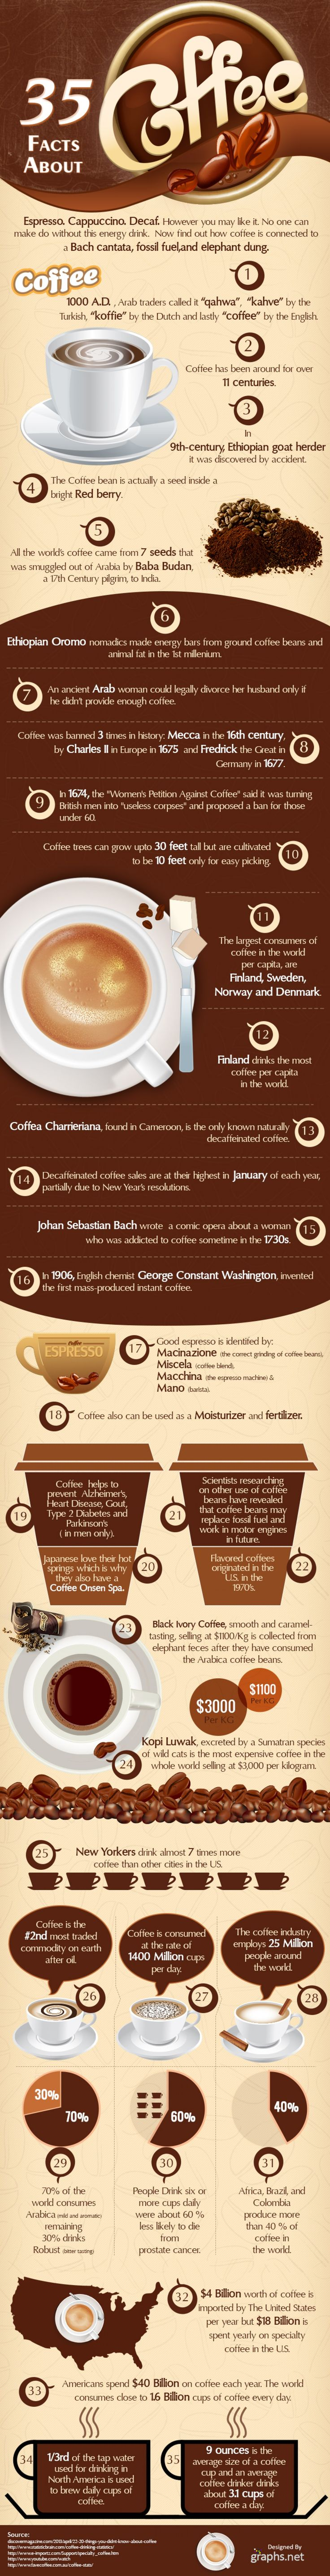 Get excited it's Friday! Which means here comes the weekend, and better yet; it's time for another #InfographicFriday which fact did you not know?  Comment the number of your newly learned #coffeefact.